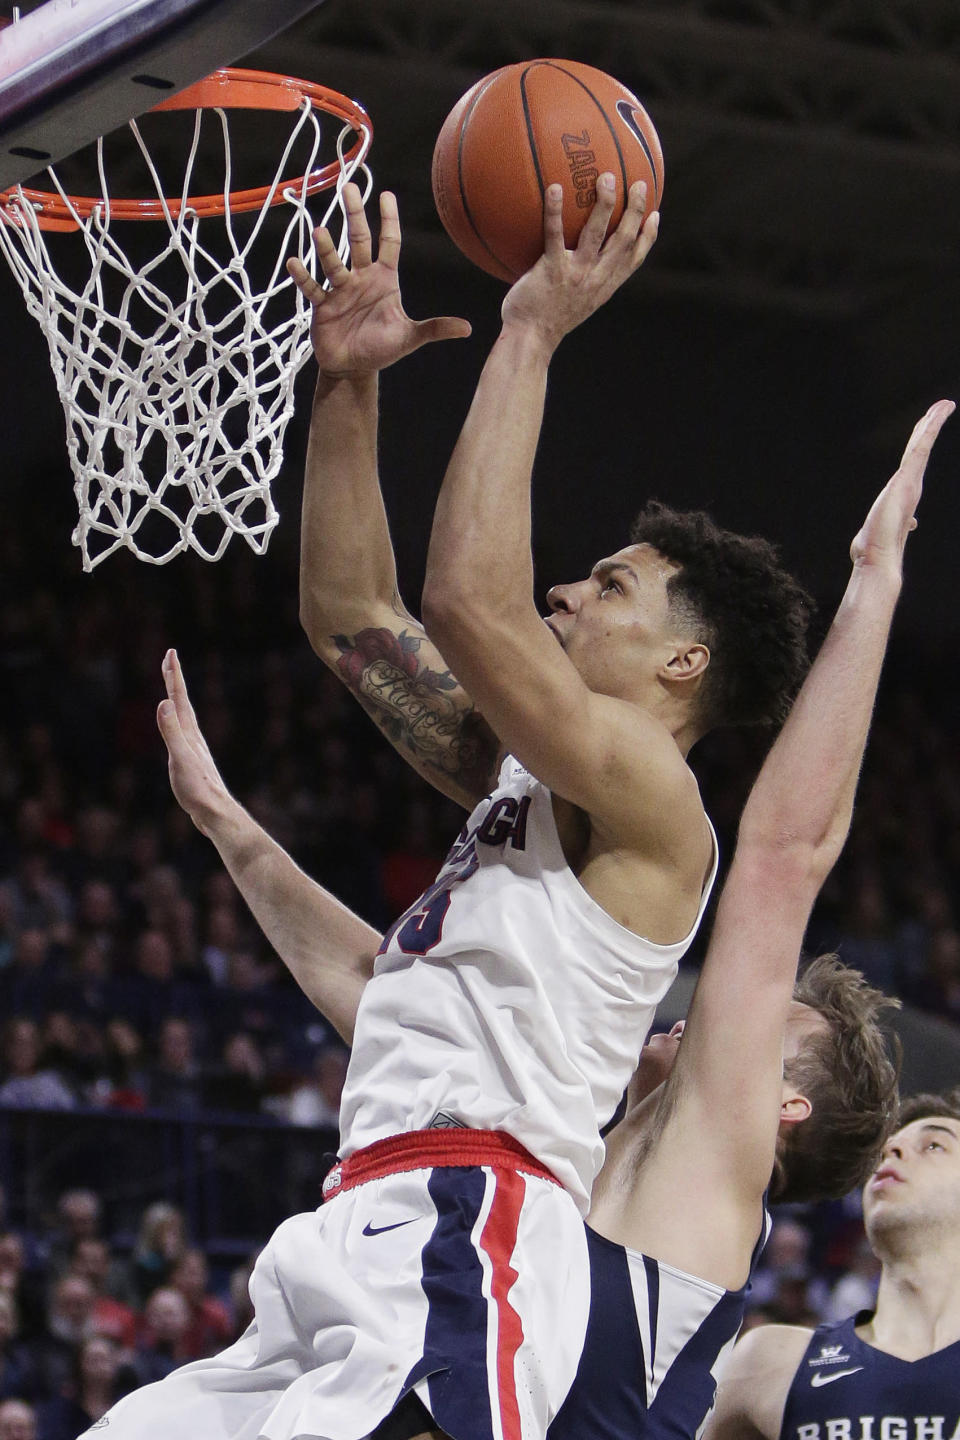 Gonzaga forward Brandon Clarke, left, shoots in front of BYU forward Luke Worthington during the second half of an NCAA college basketball game in Spokane, Wash., Saturday, Feb. 23, 2019. Gonzaga won 102-68. (AP Photo/Young Kwak)